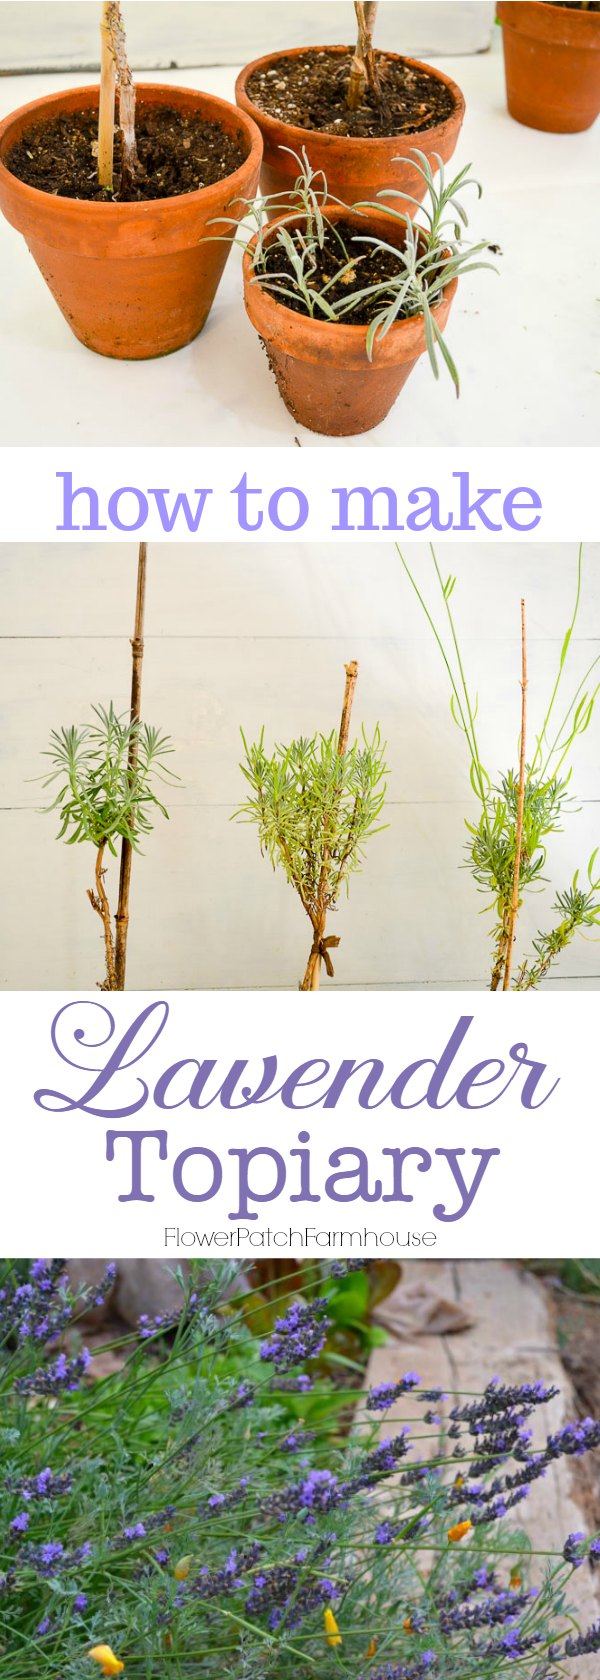 Creating Lavender topiary from cuttings, an easy, fun garden project. #topiary #lavender